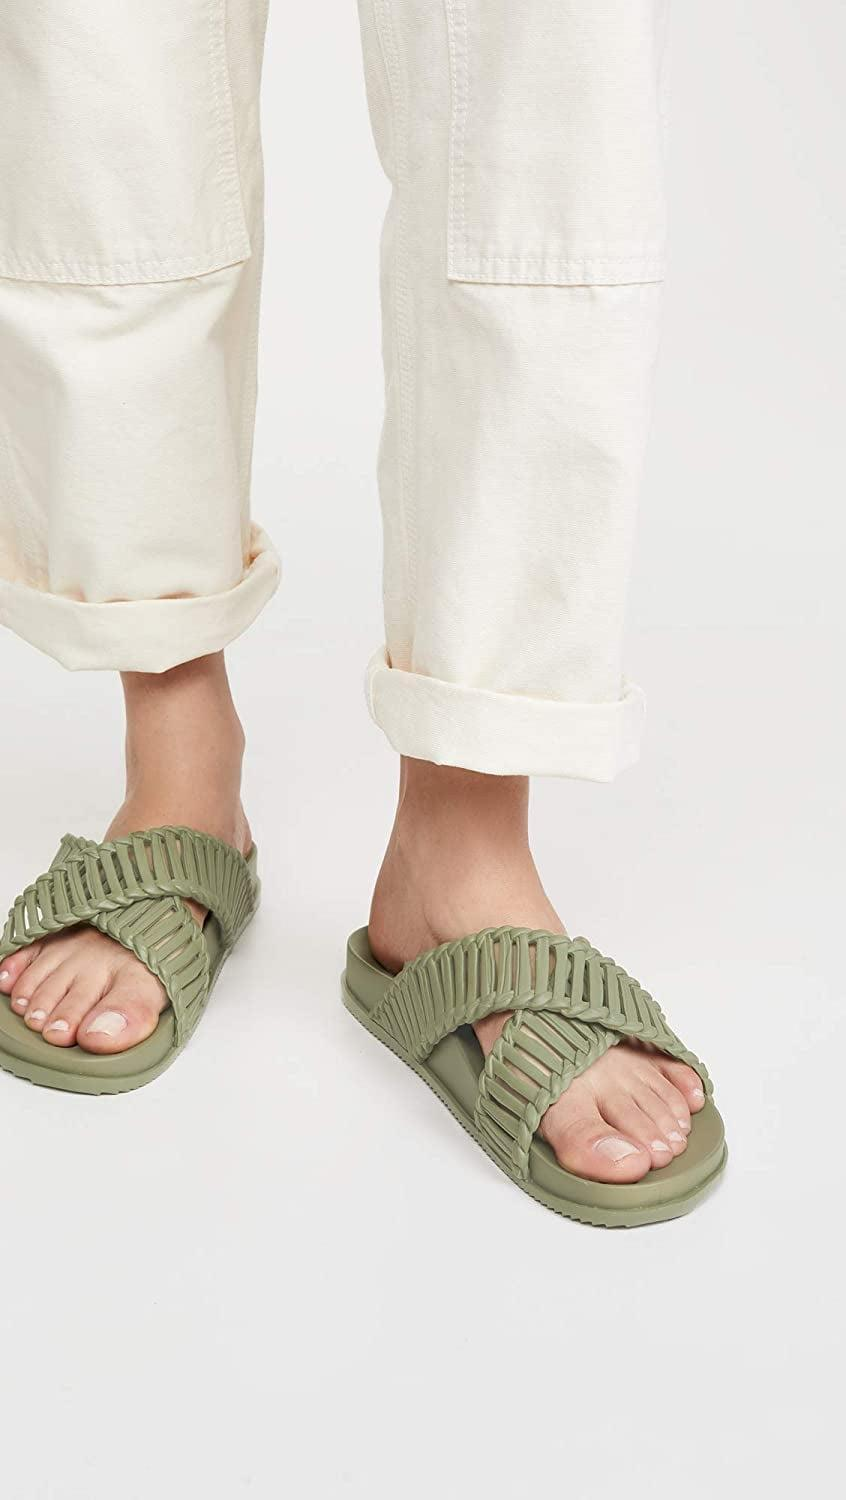 <p>These <span>Melissa x Salinas Cosmic II Slides</span> ($41 - $75) are ultra-comfortable, you almost won't feel like you're wearing them.</p>